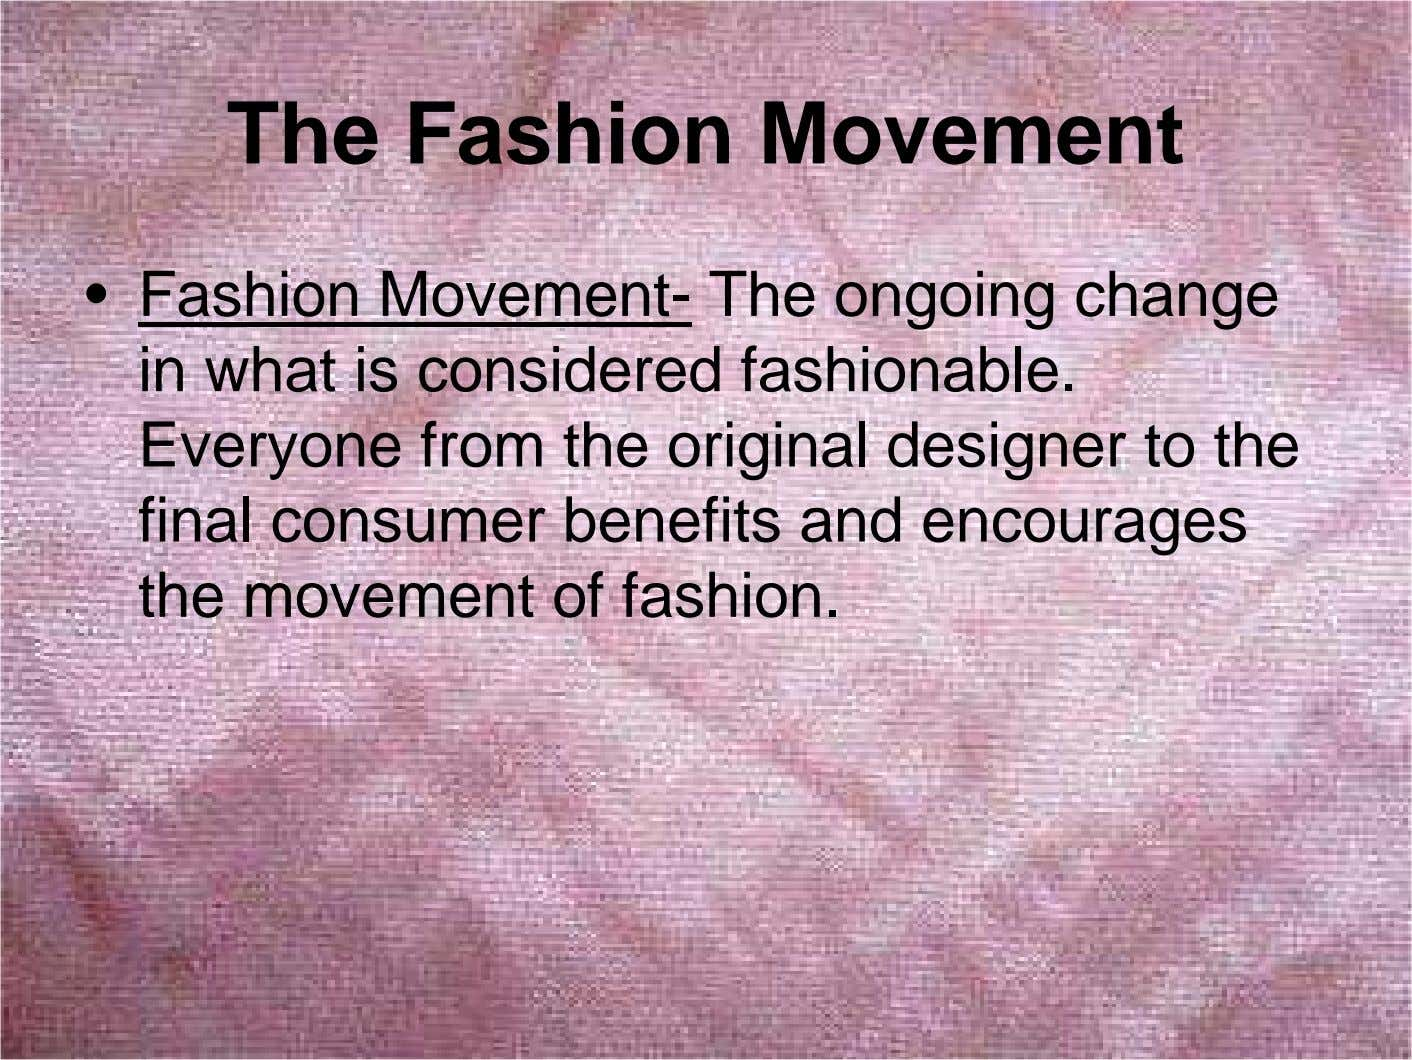 The Fashion Movement • Fashion Movement- The ongoing change in what is considered fashionable. Everyone